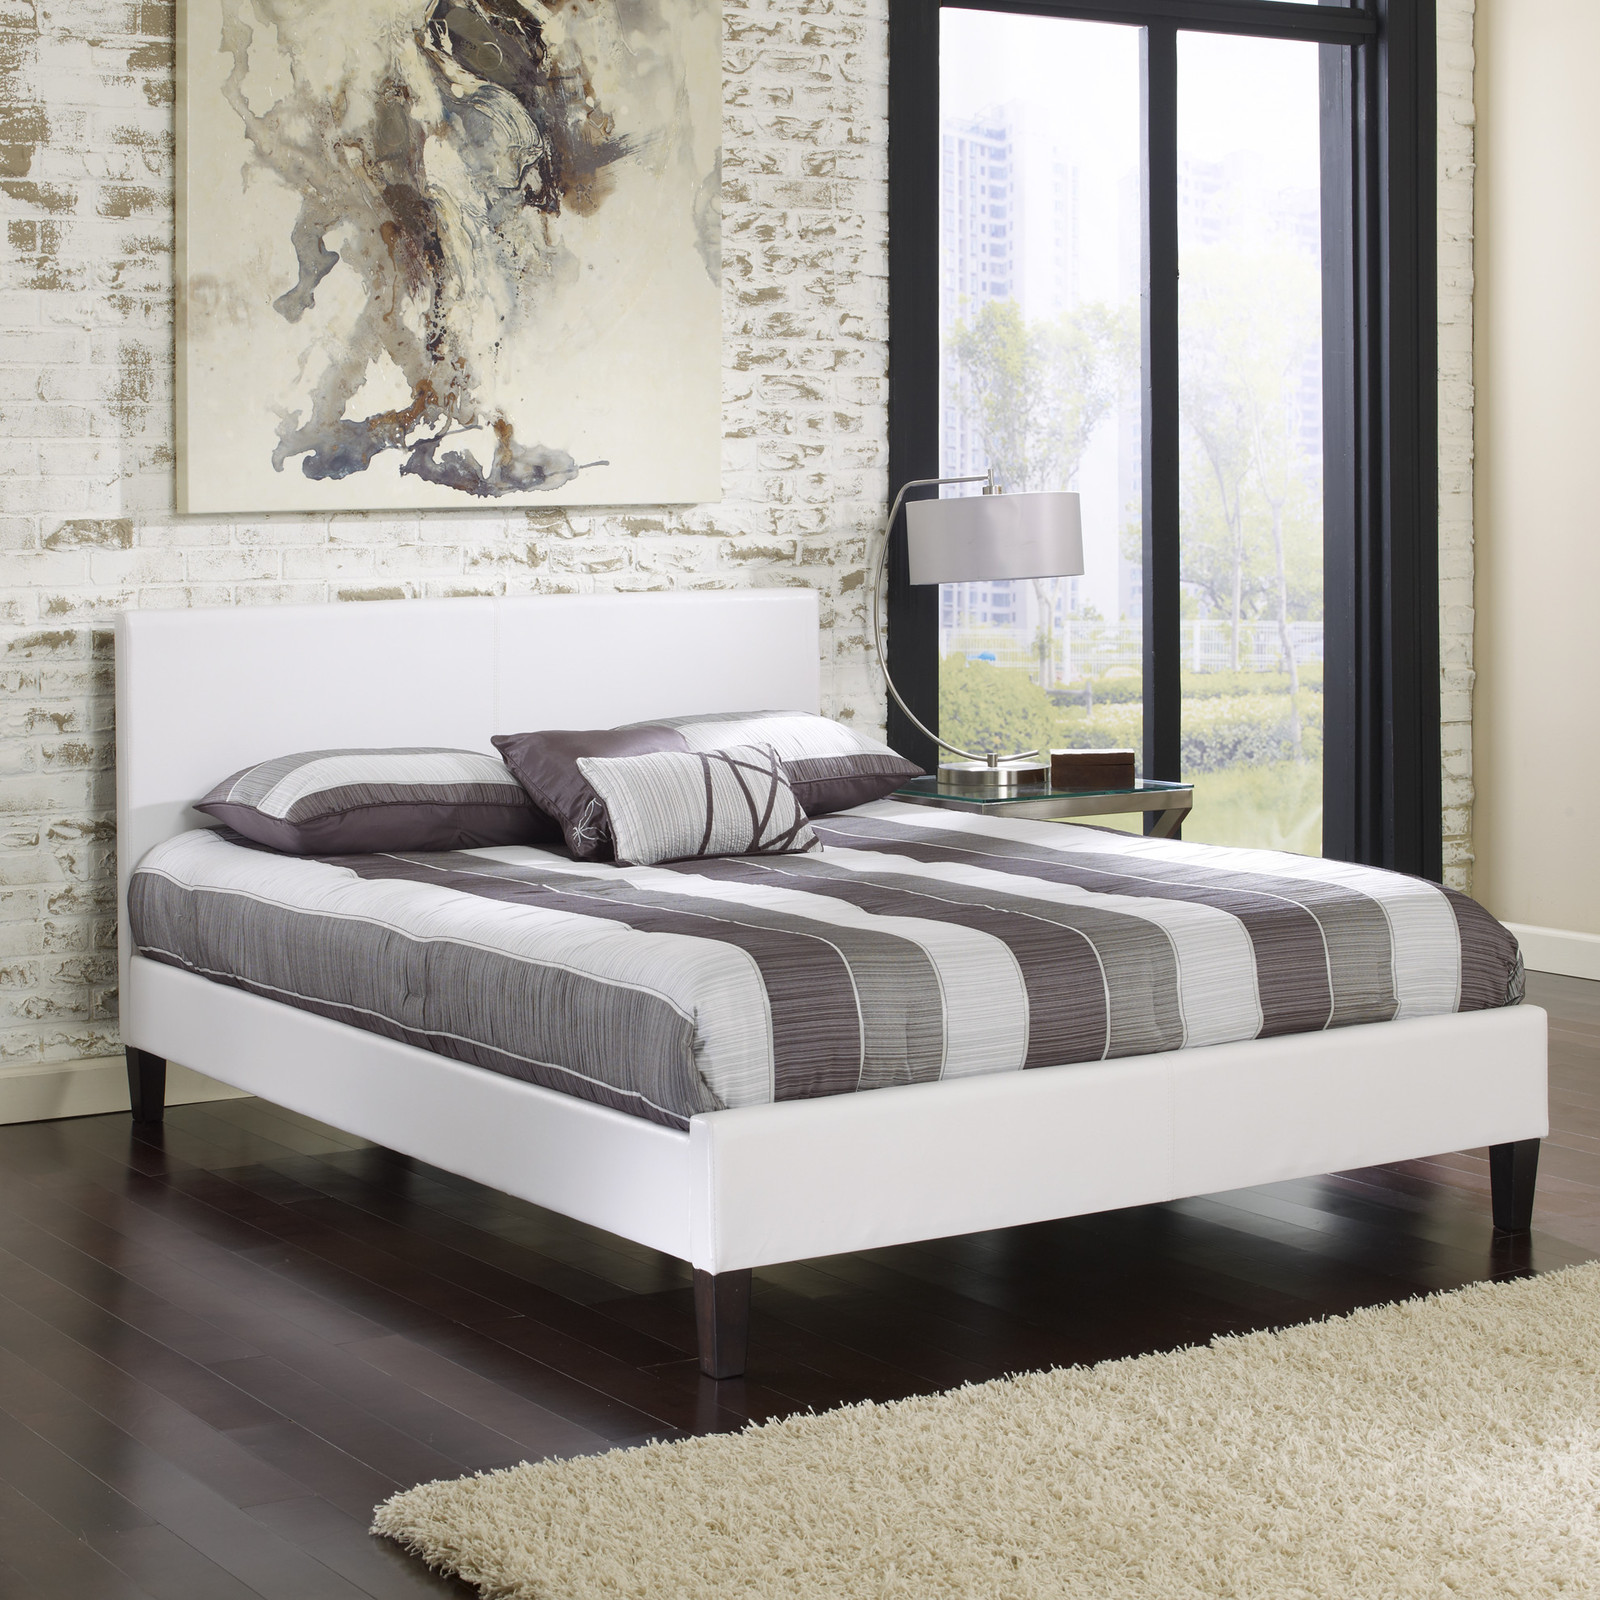 Padded Leather Solid Wood Furniture White Bedroom Beds Bed Frames